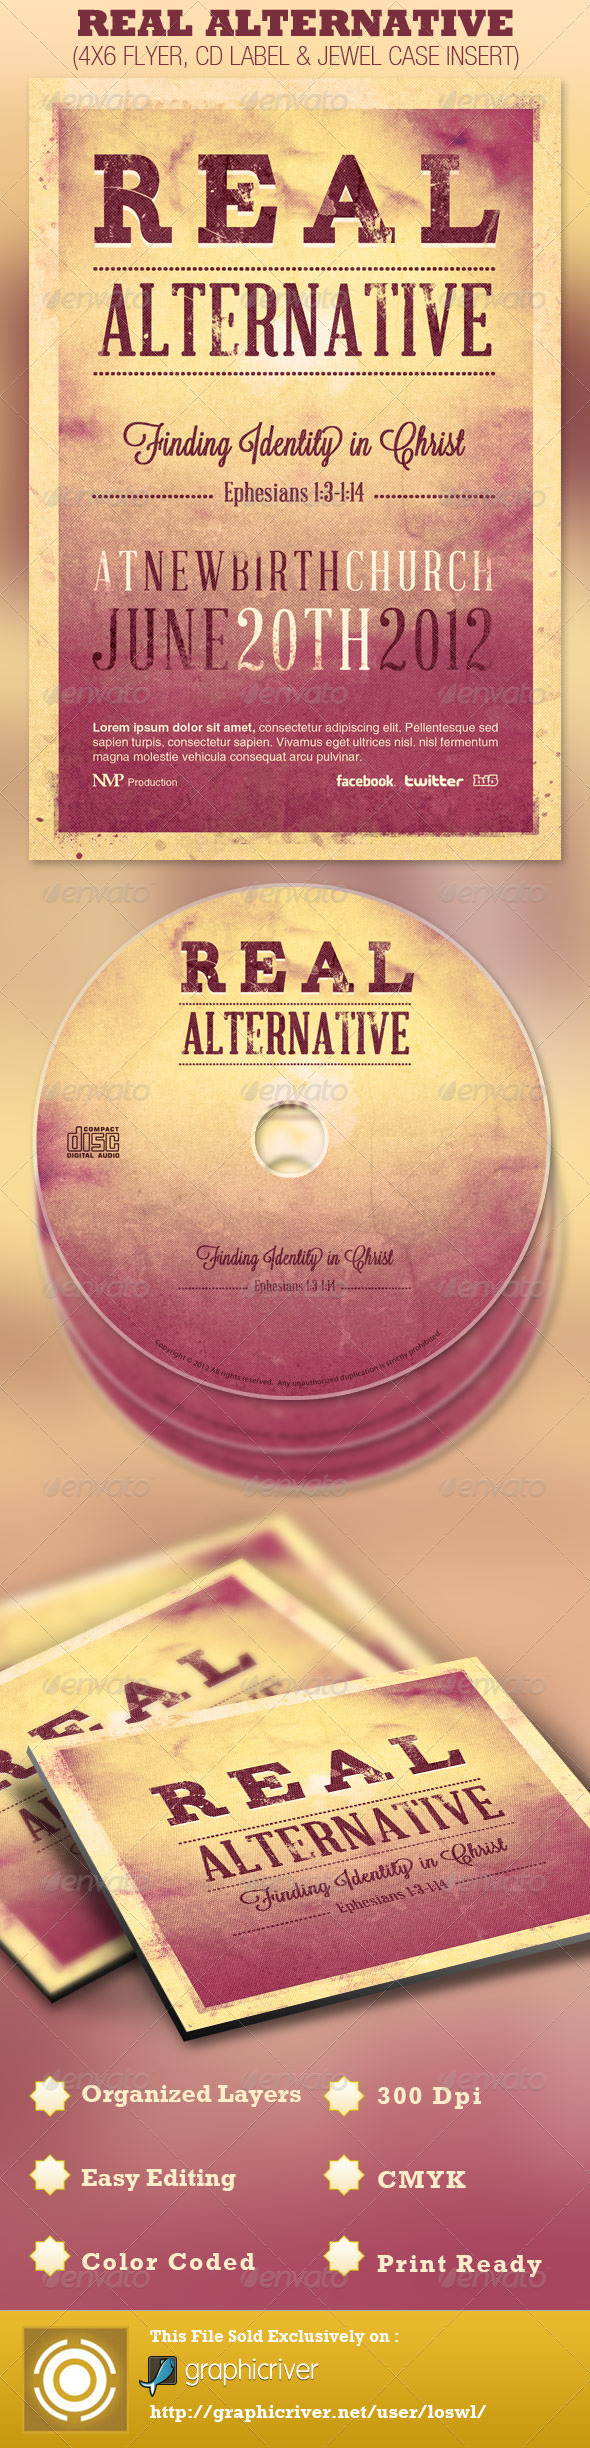 GraphicRiver Real Alternative Flyer and CD Template 2738329